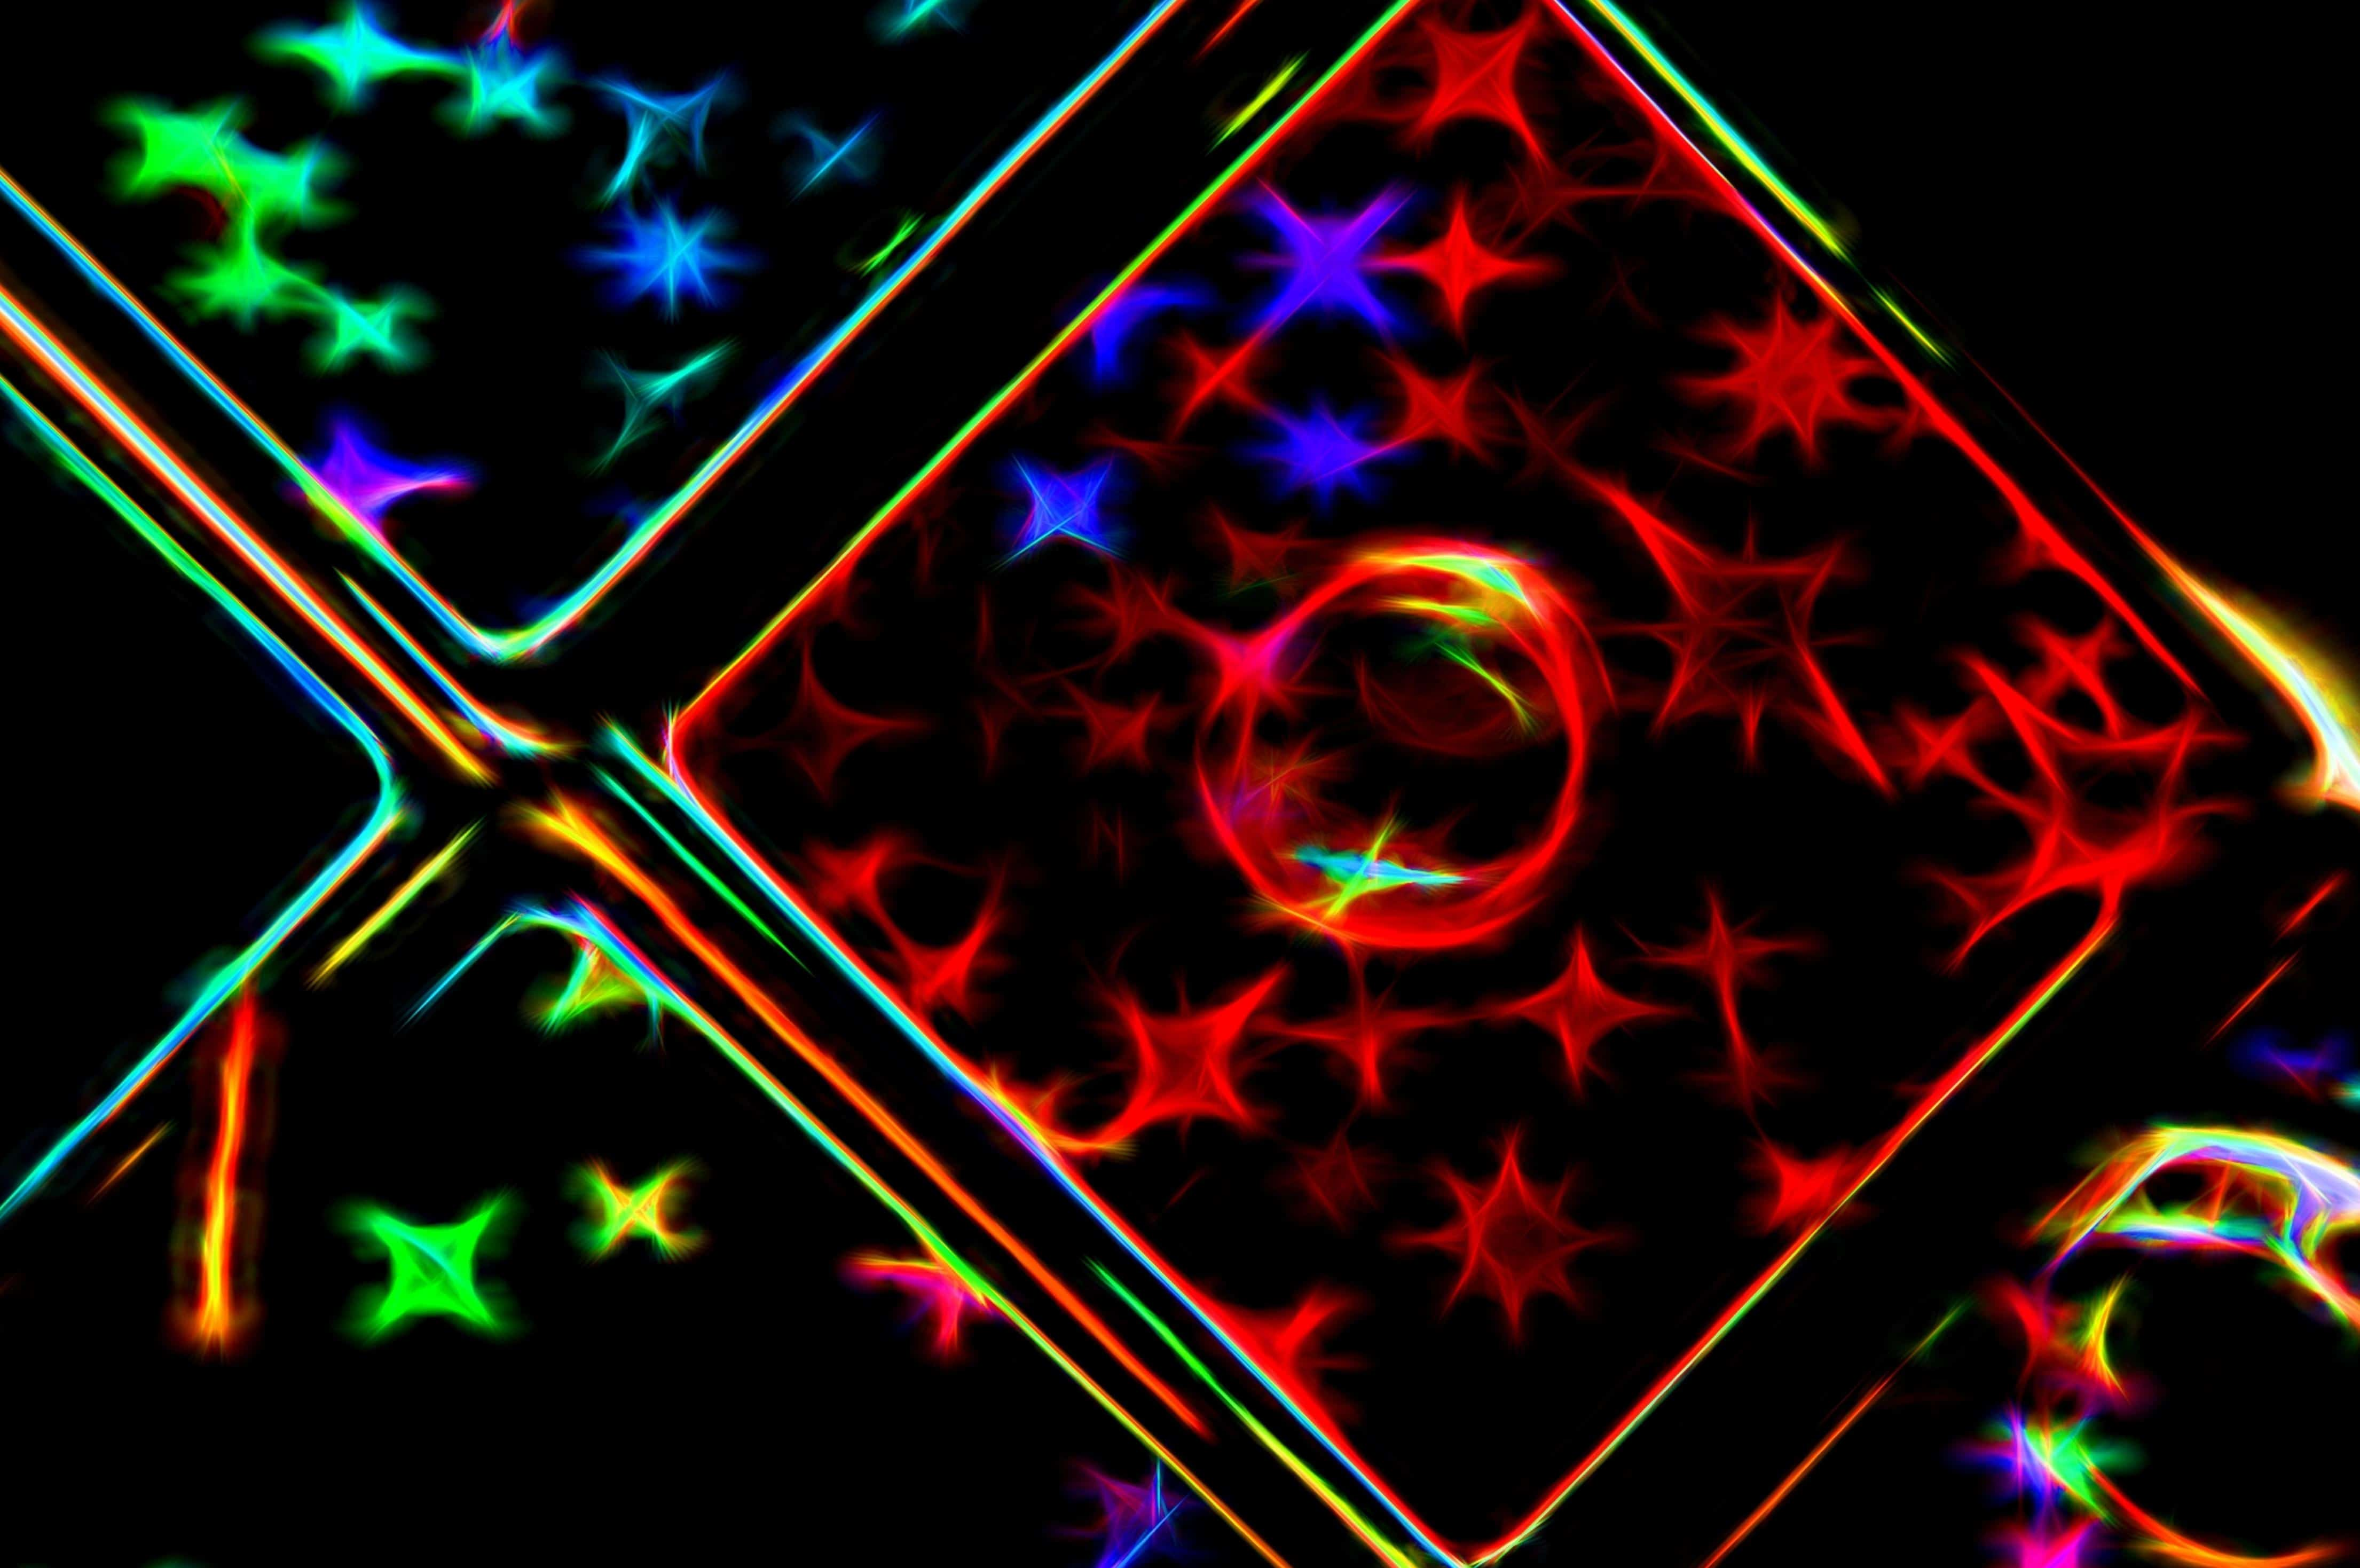 free picture  abstract  design  energy  dark  laser